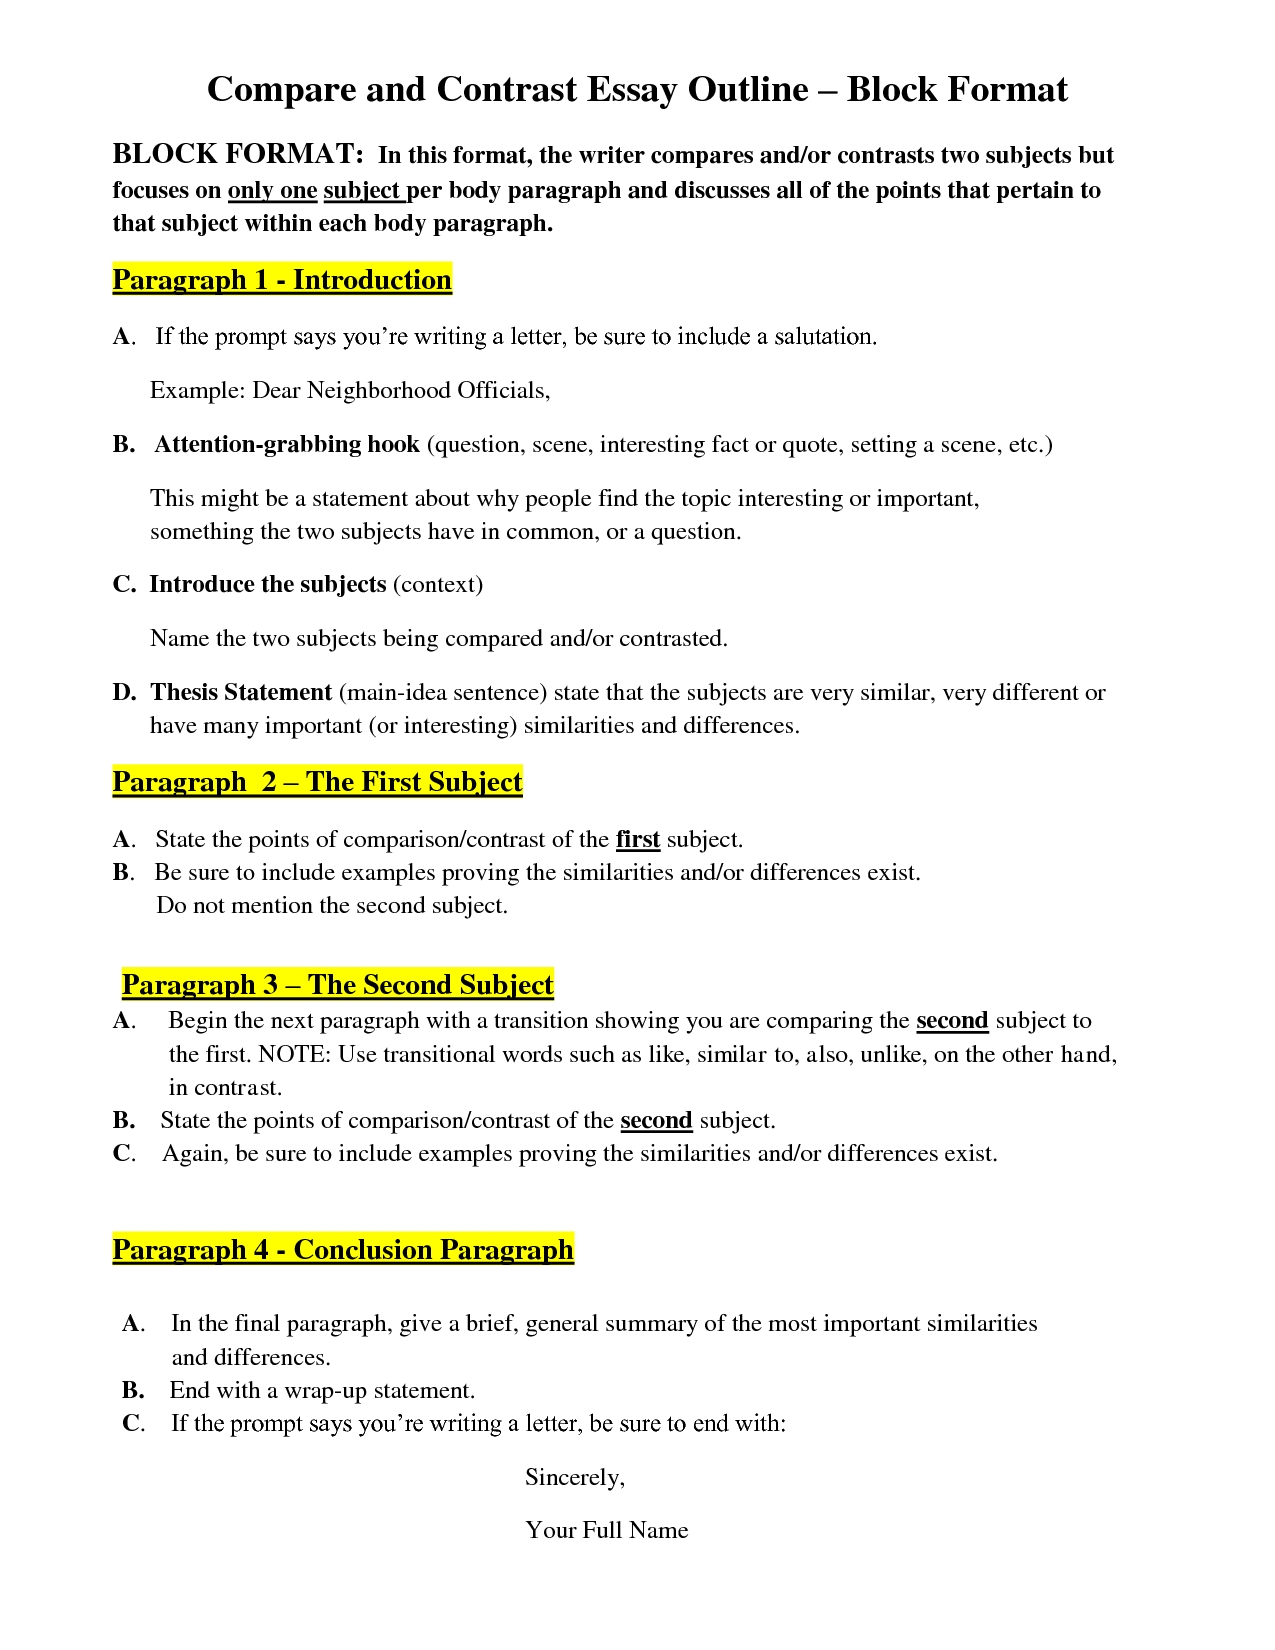 005 Comparison And Contrastsay Examples Point By Template Compare Outline Example Maxresdefault Creating Project Plan For Your Youtube How To An With Good Cover Letter Samples Imposing Contrast Essay Point-by-point Full